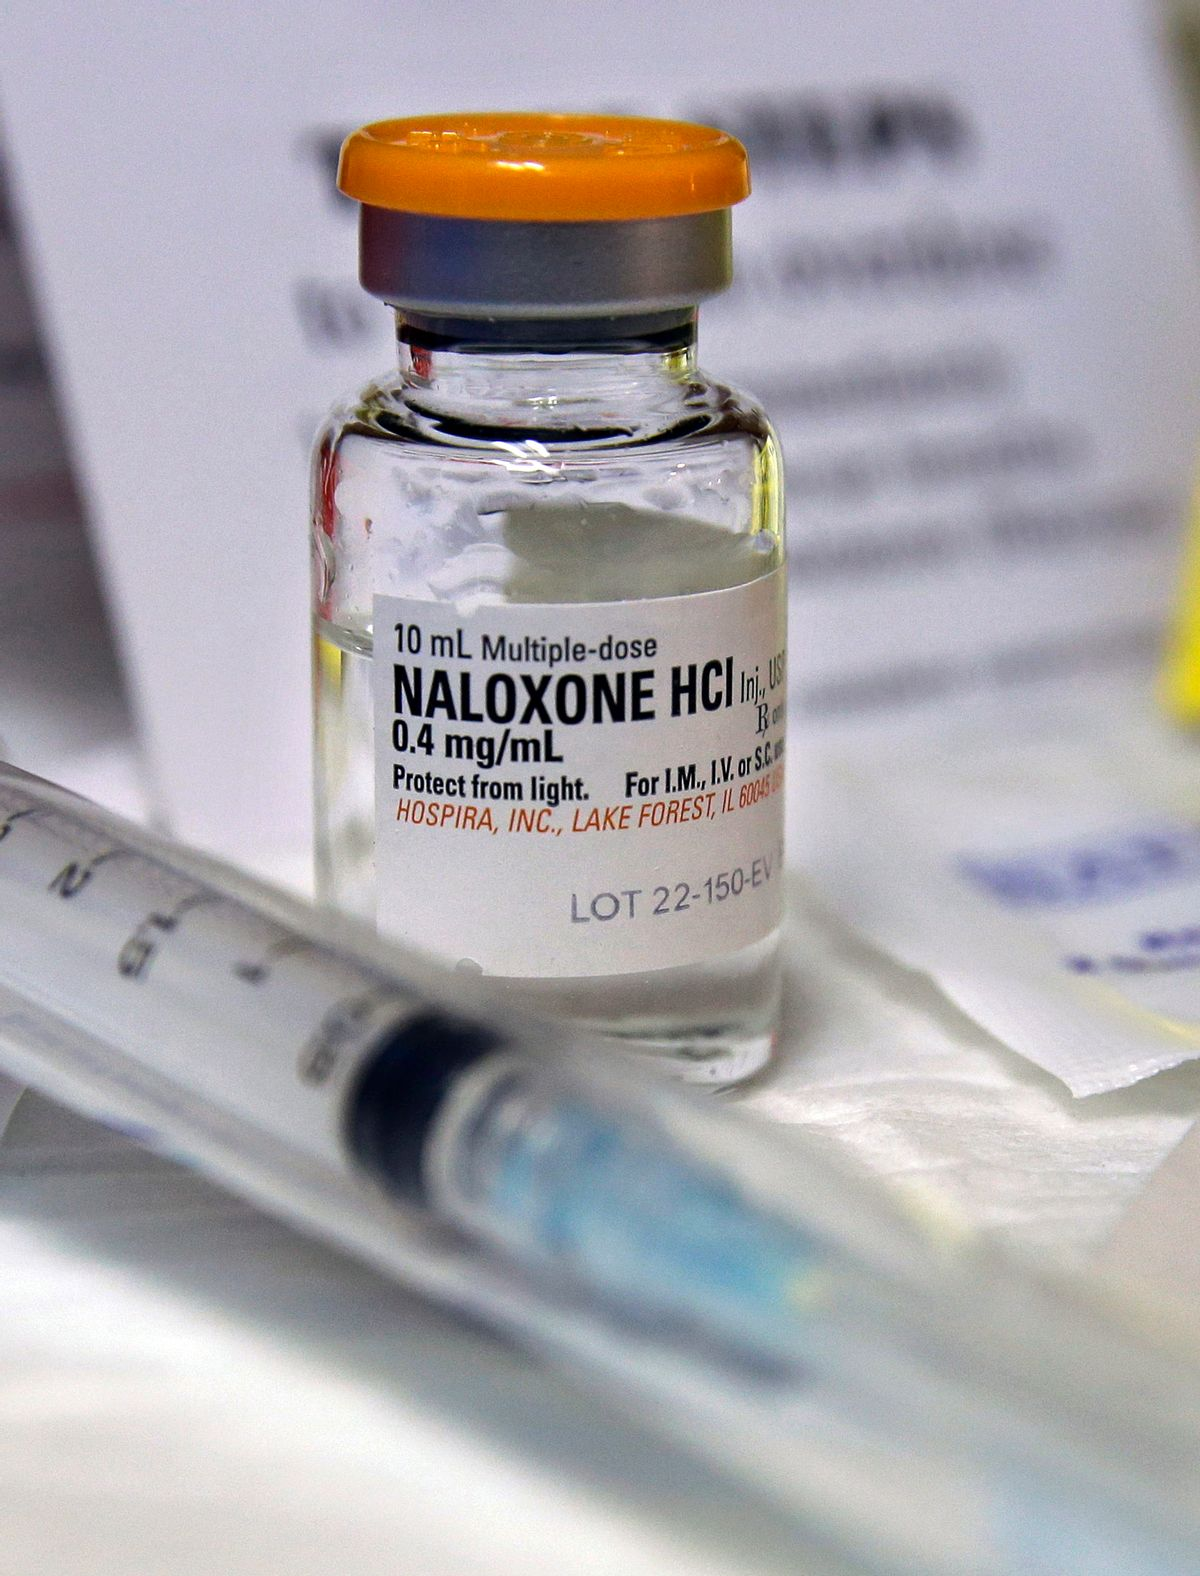 FILE- In this Wednesday, Feb. 19, 2014, file photograph, a small bottle of the opiate overdose treatment drug, naloxone, also known by its brand name Narcan, is displayed at the South Jersey AIDS Alliance in Atlantic City, N.J. It is becoming easier for friends and family of heroin users or patients abusing strong prescription painkillers to get access to naloxone, a powerful, life-saving antidote, as state lawmakers loosen restrictions on the medicine to fight a growing epidemic. (AP Photo/Mel Evans, File) (AP)